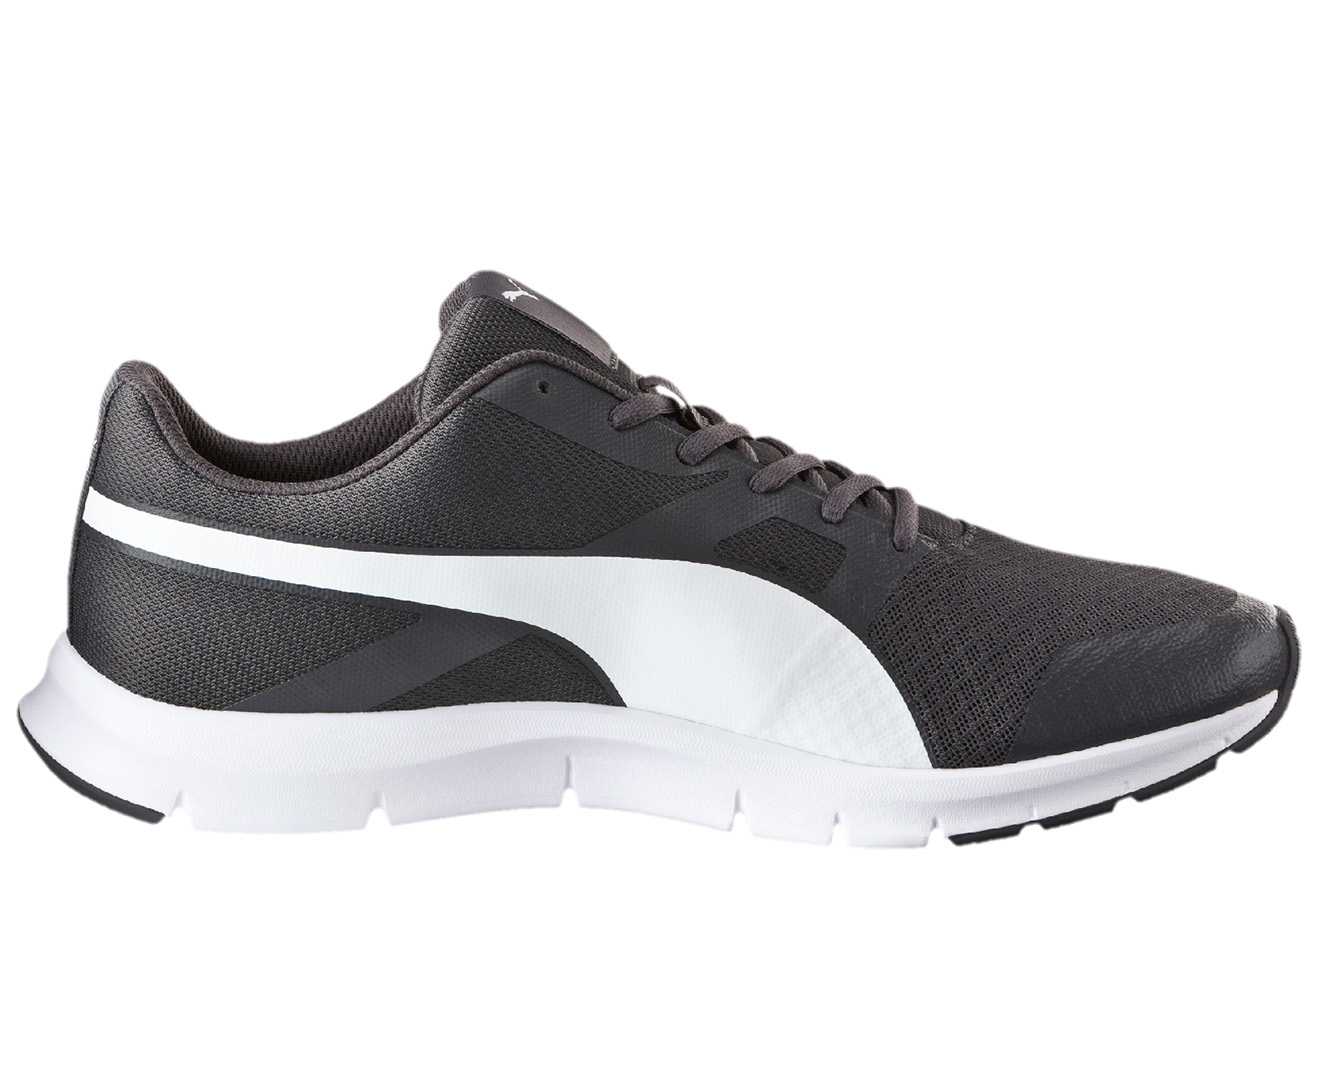 Puma Men's Flexracer Running Shoe AsphaltWhite